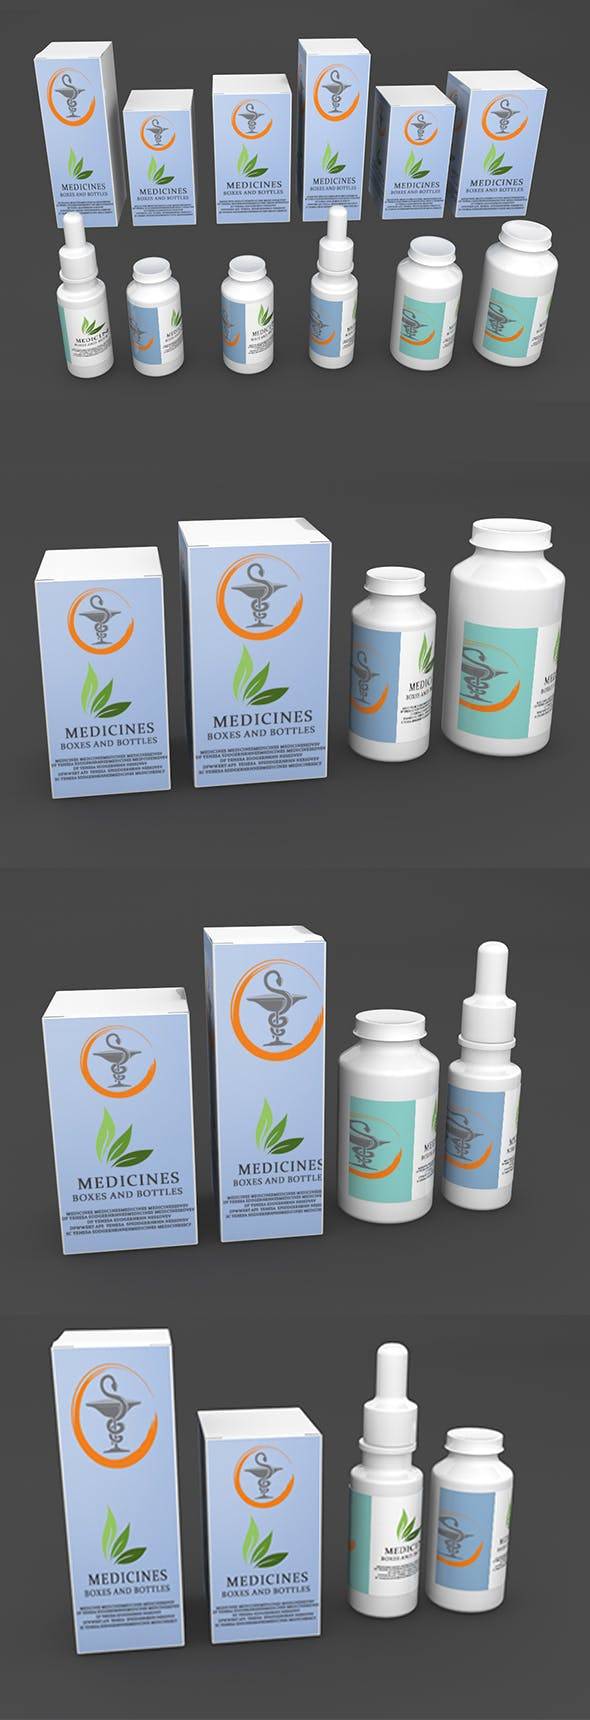 Medicines in boxes and bottles - 3DOcean Item for Sale